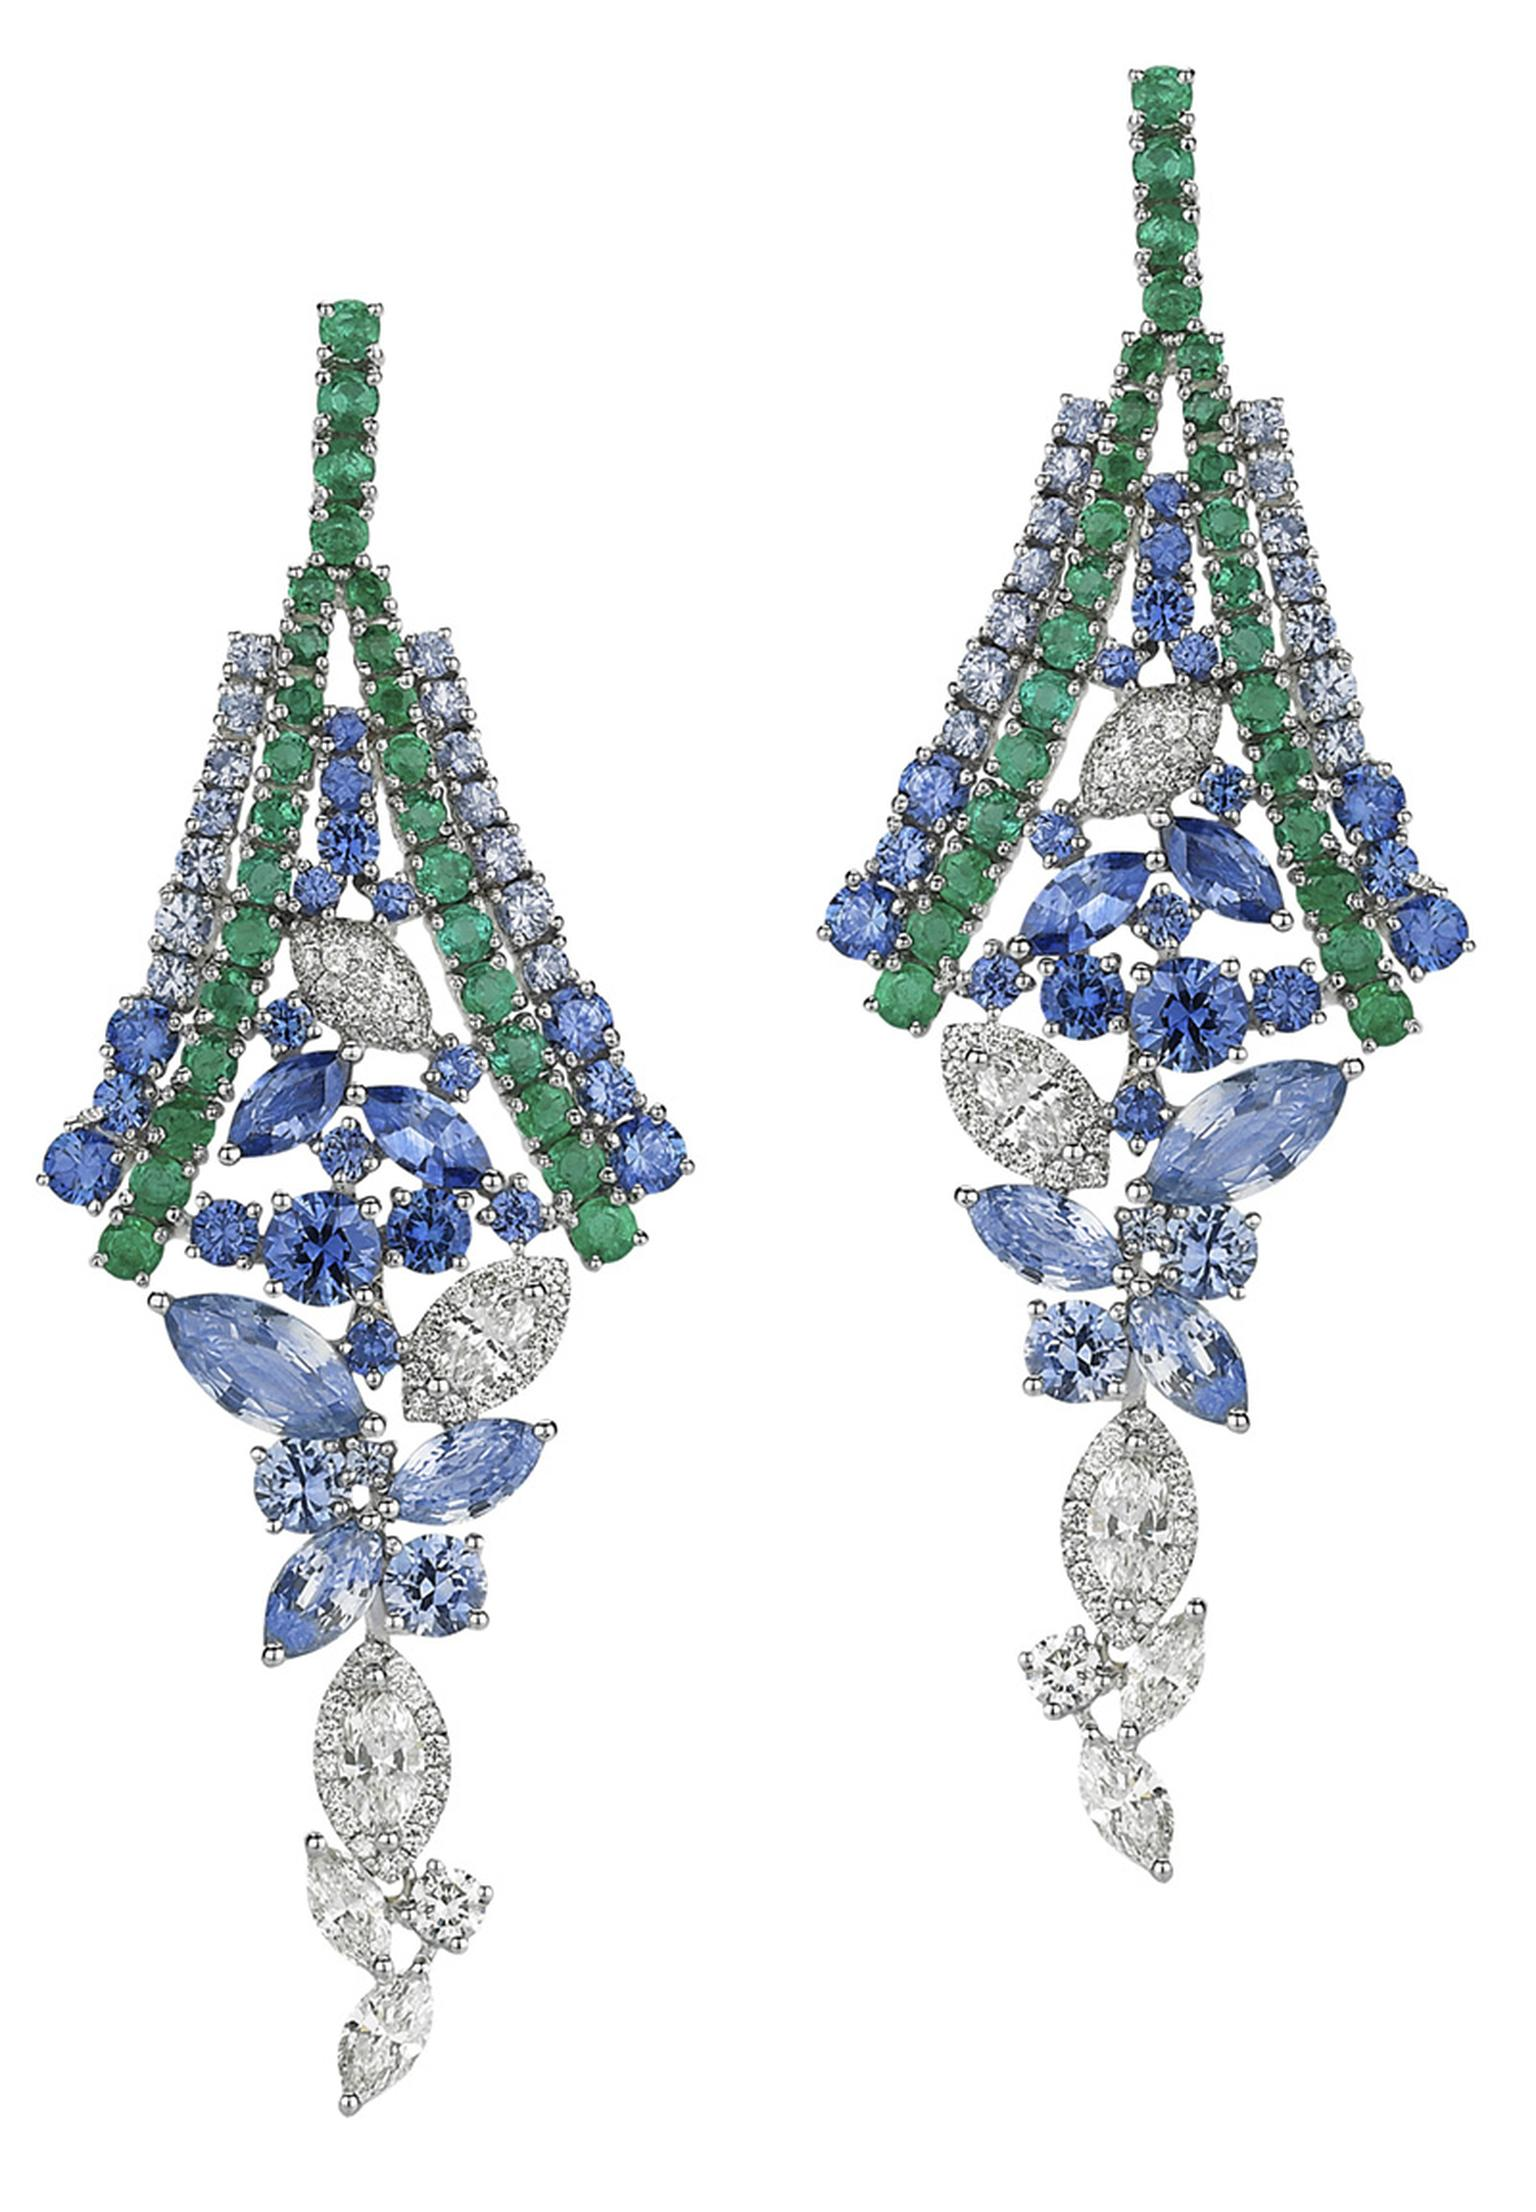 01-Avakian-emerald-and-sapphire-earrings.jpg